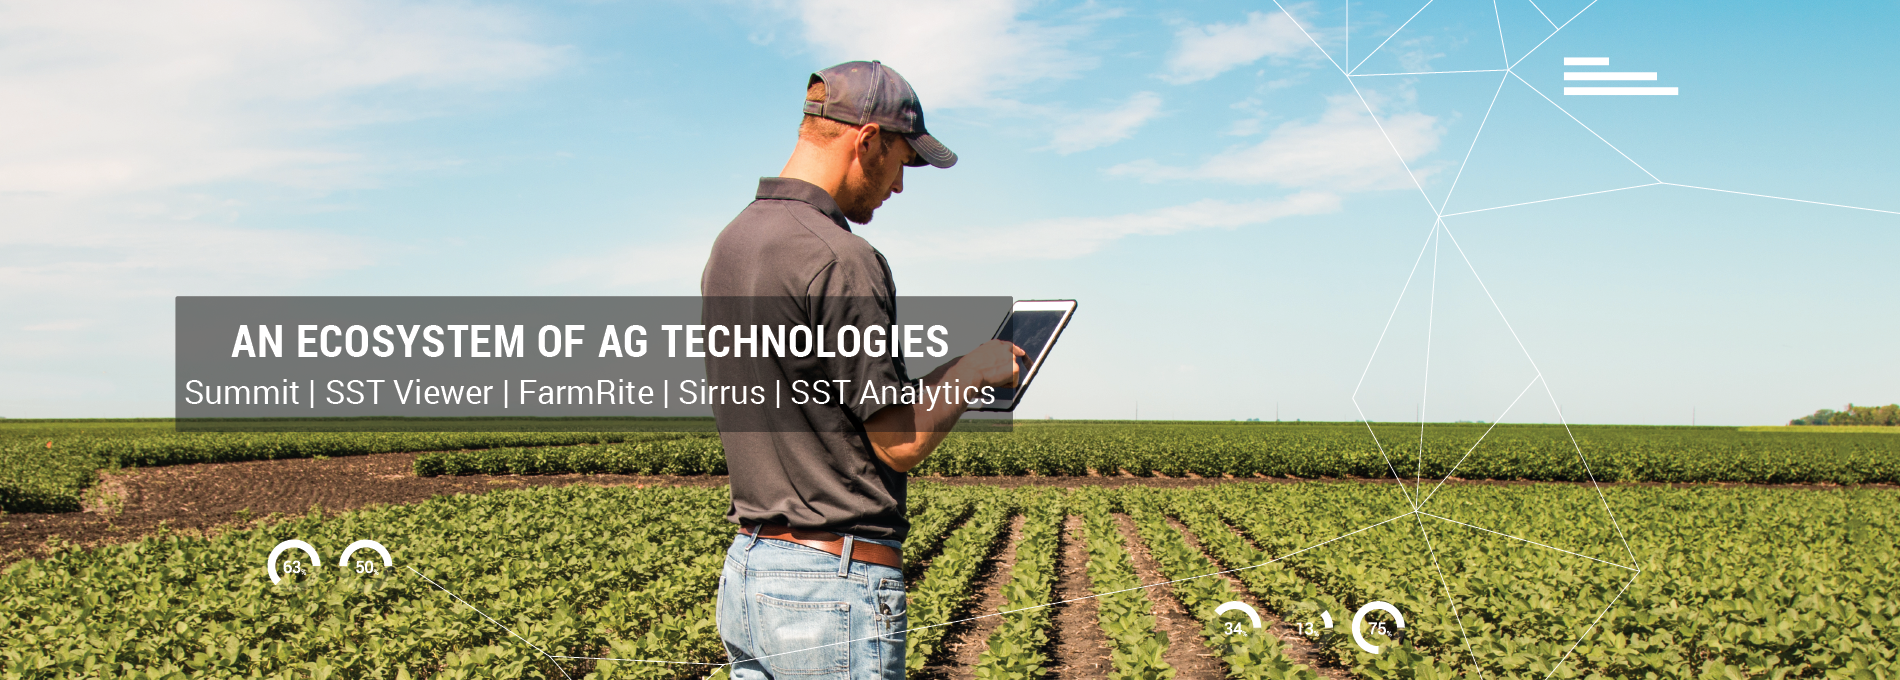 agricultural systems Major in agricultural technology and production management students in this hands-on major gain a science-based overview of agriculture and food systems, with an emphasis on the practical application of technology to agricultural production systems.